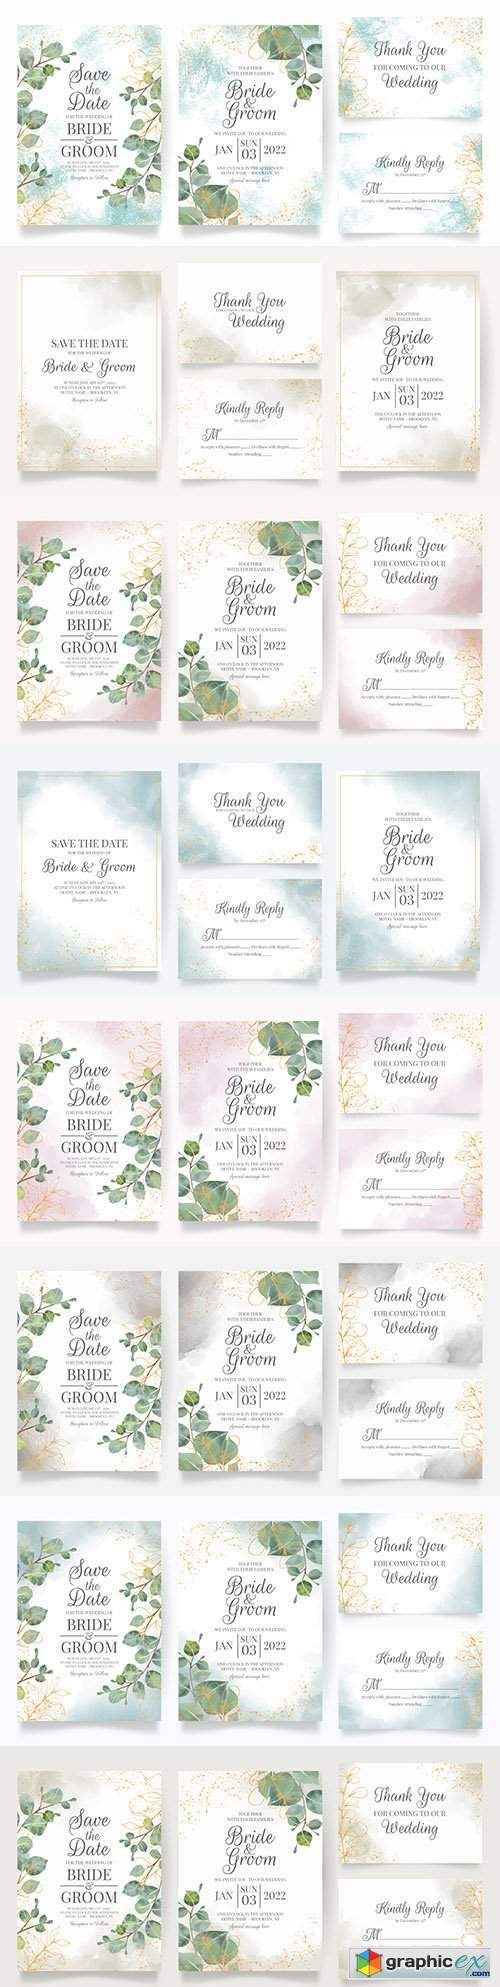 Beautiful floral frame wedding invitation template